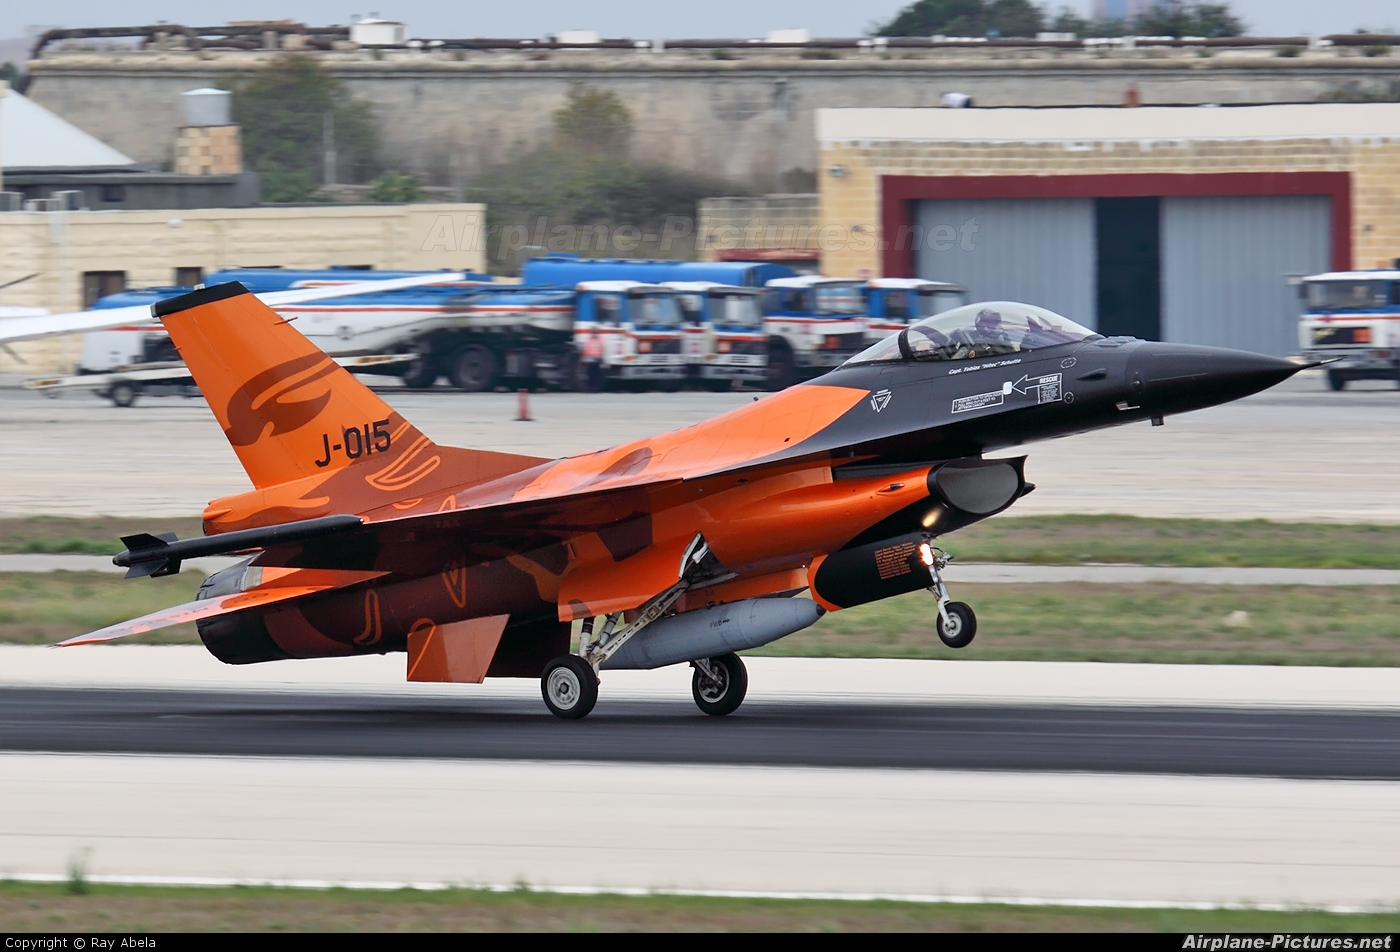 Netherlands - Air Force J-015 aircraft at Malta Intl